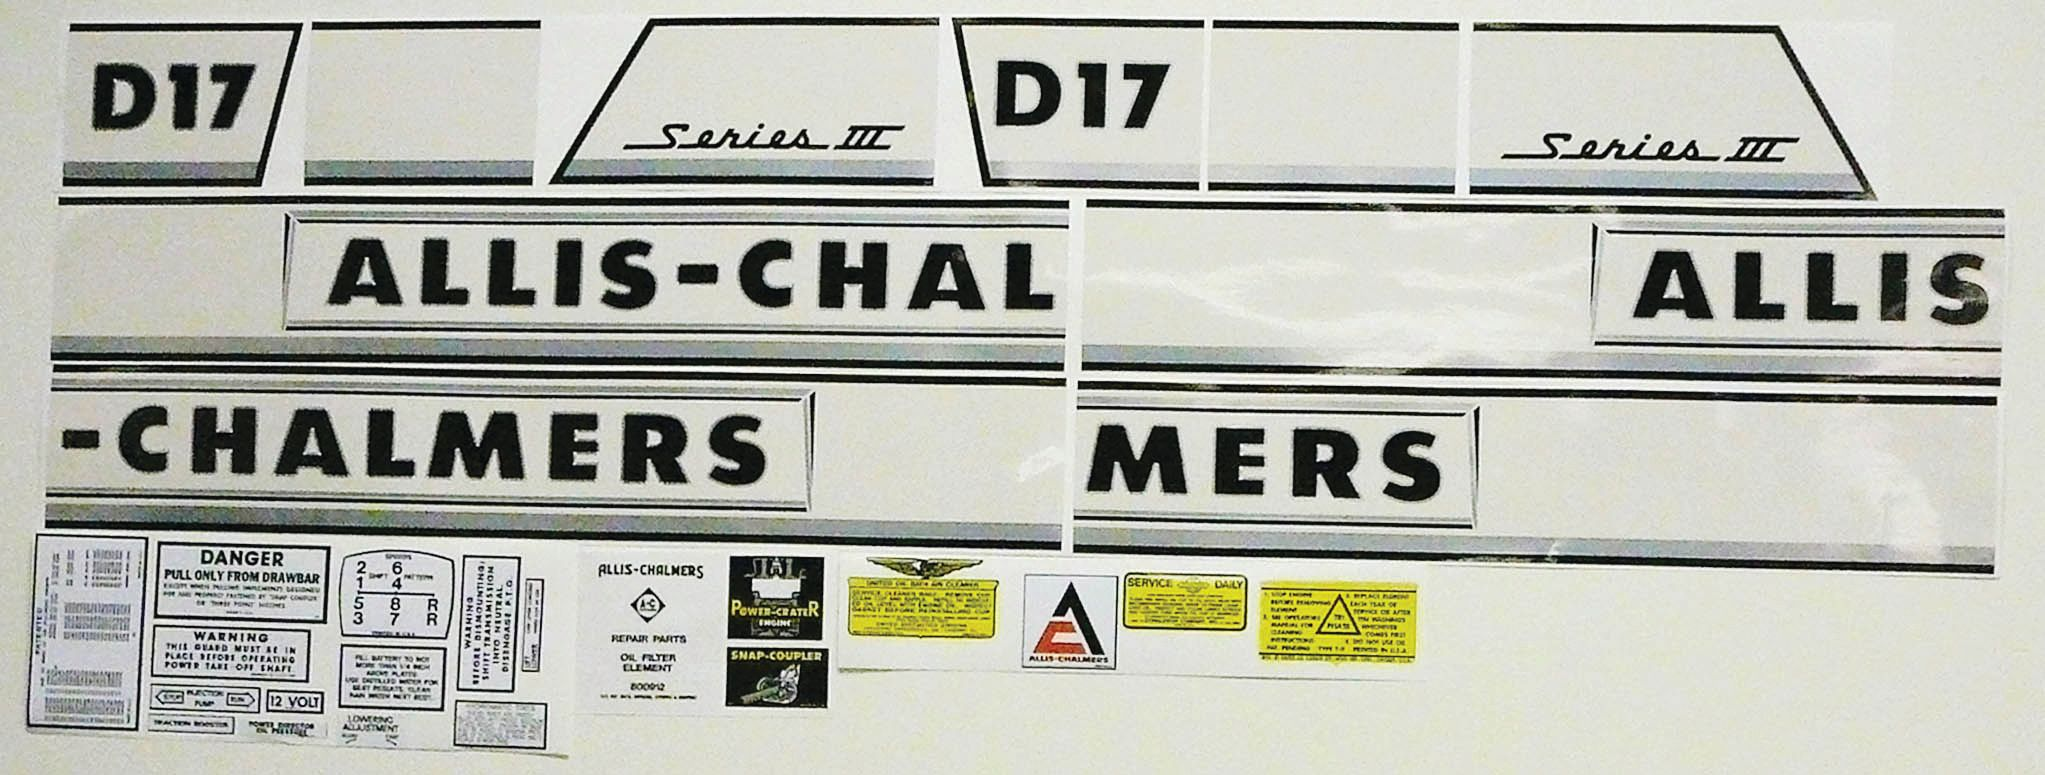 ALLIS CHALMERS DECAL SET-ALLIS D17 SERIES 3 68955